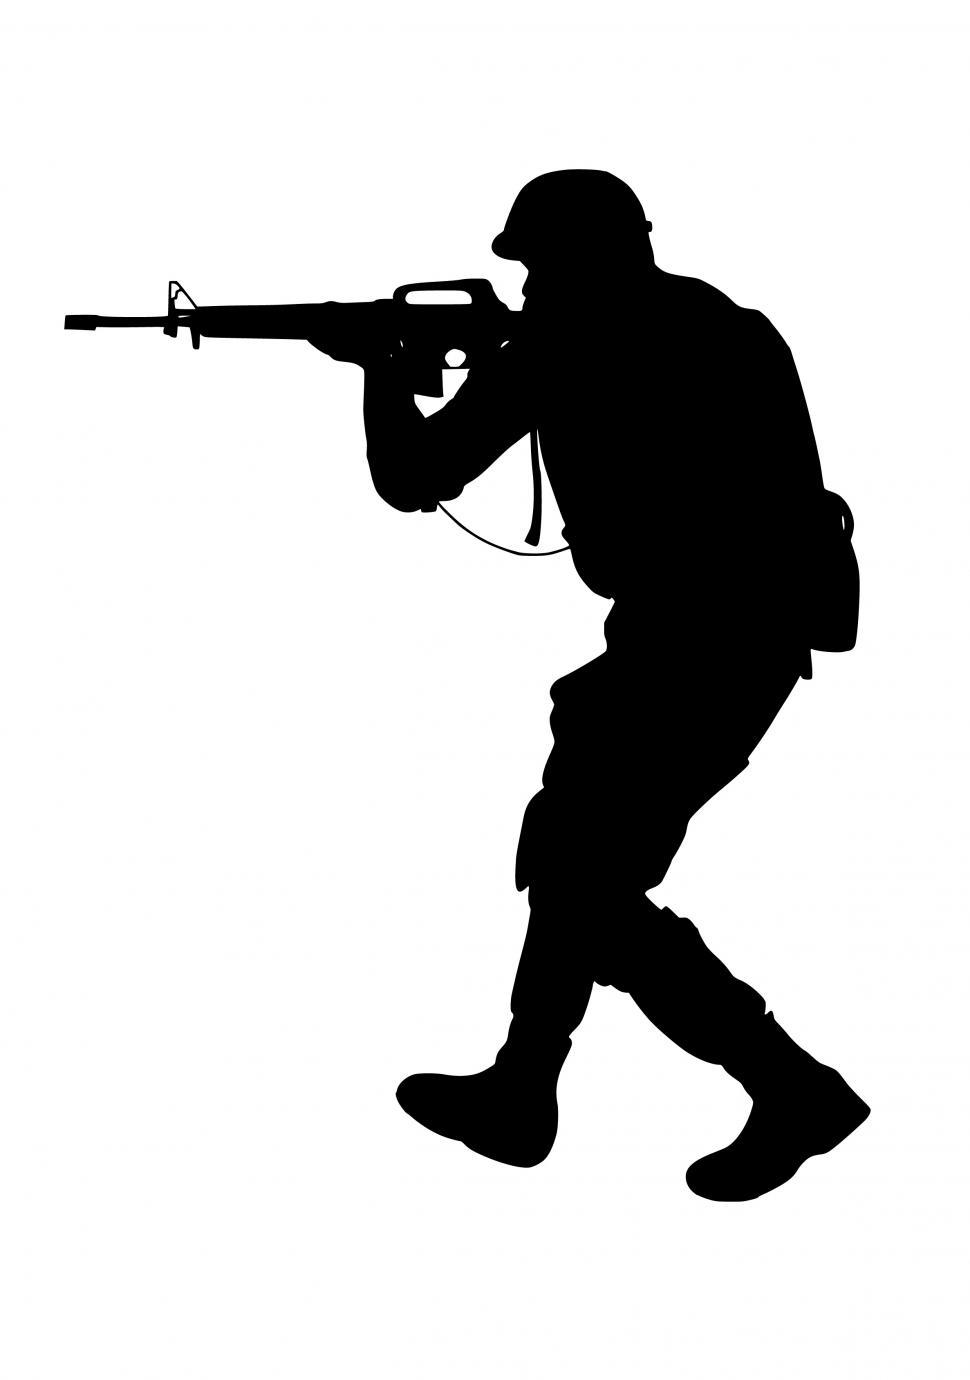 Download Free Stock HD Photo of special forces Silhouette  Online